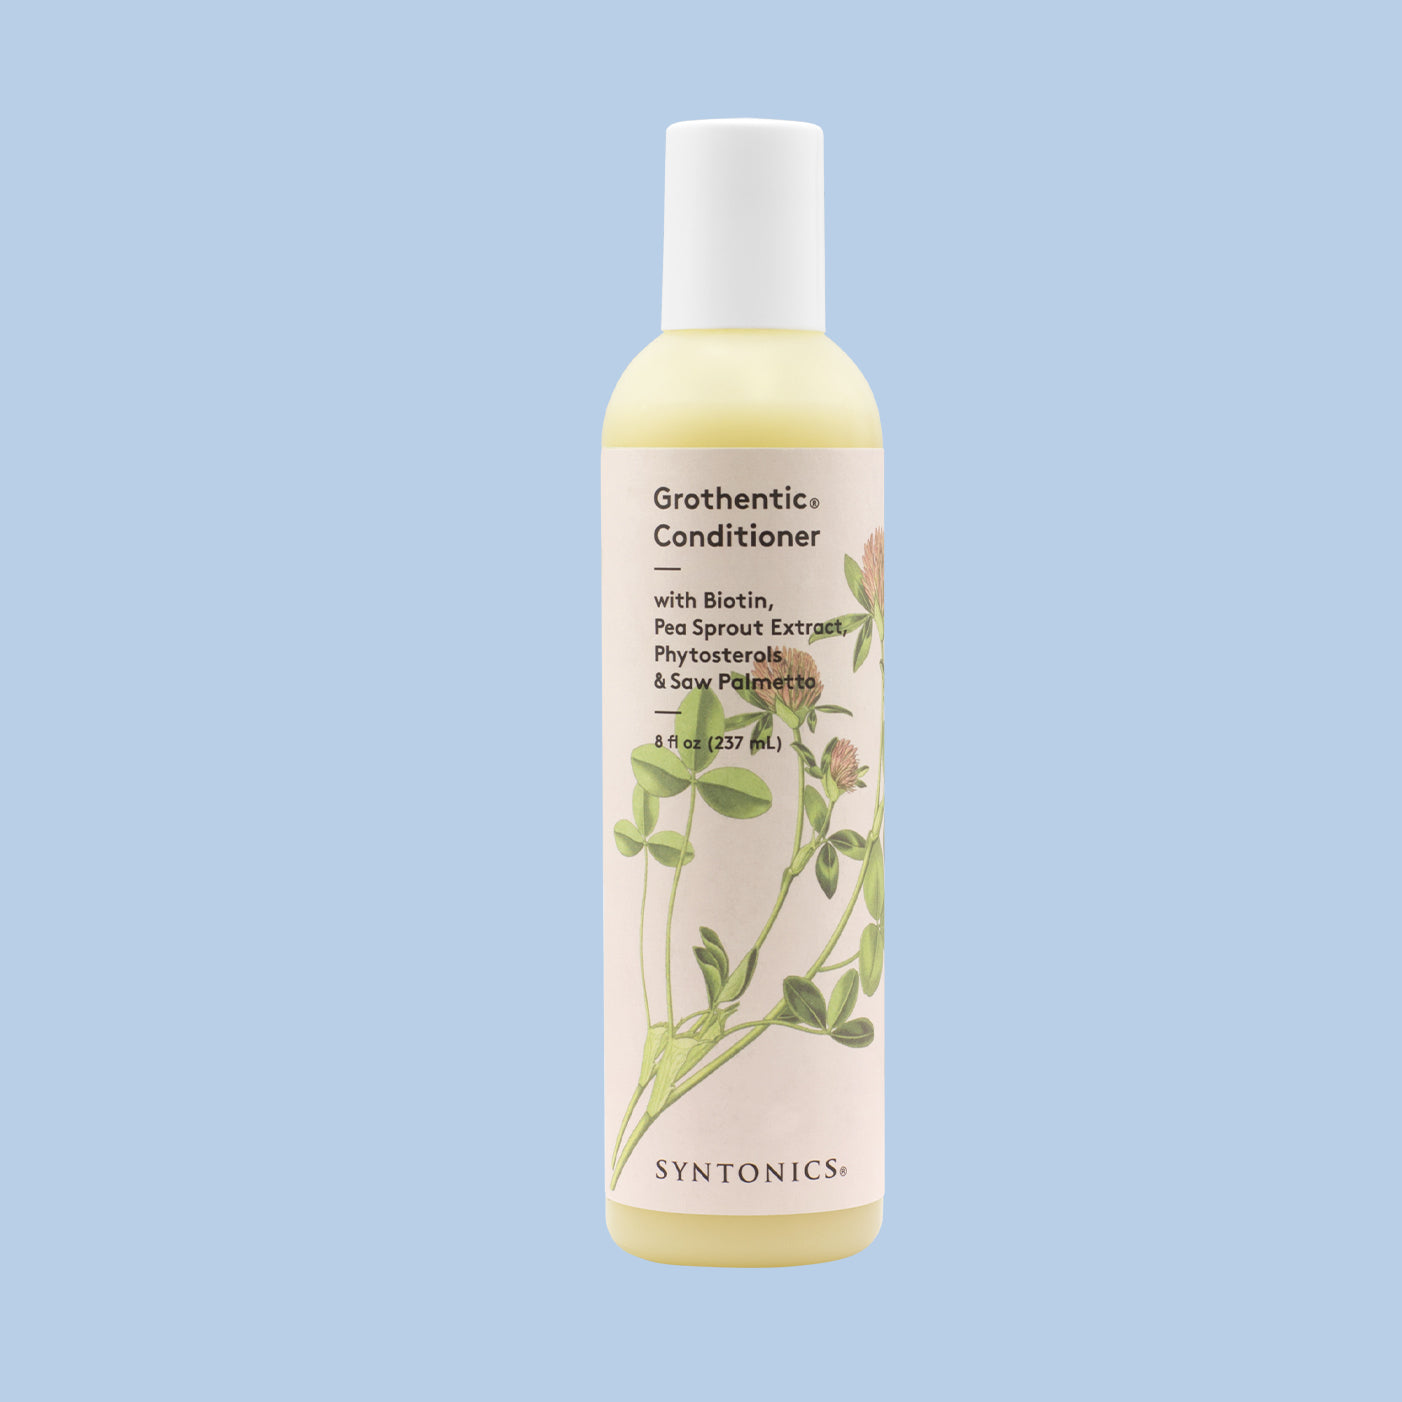 Grothentic Conditioner